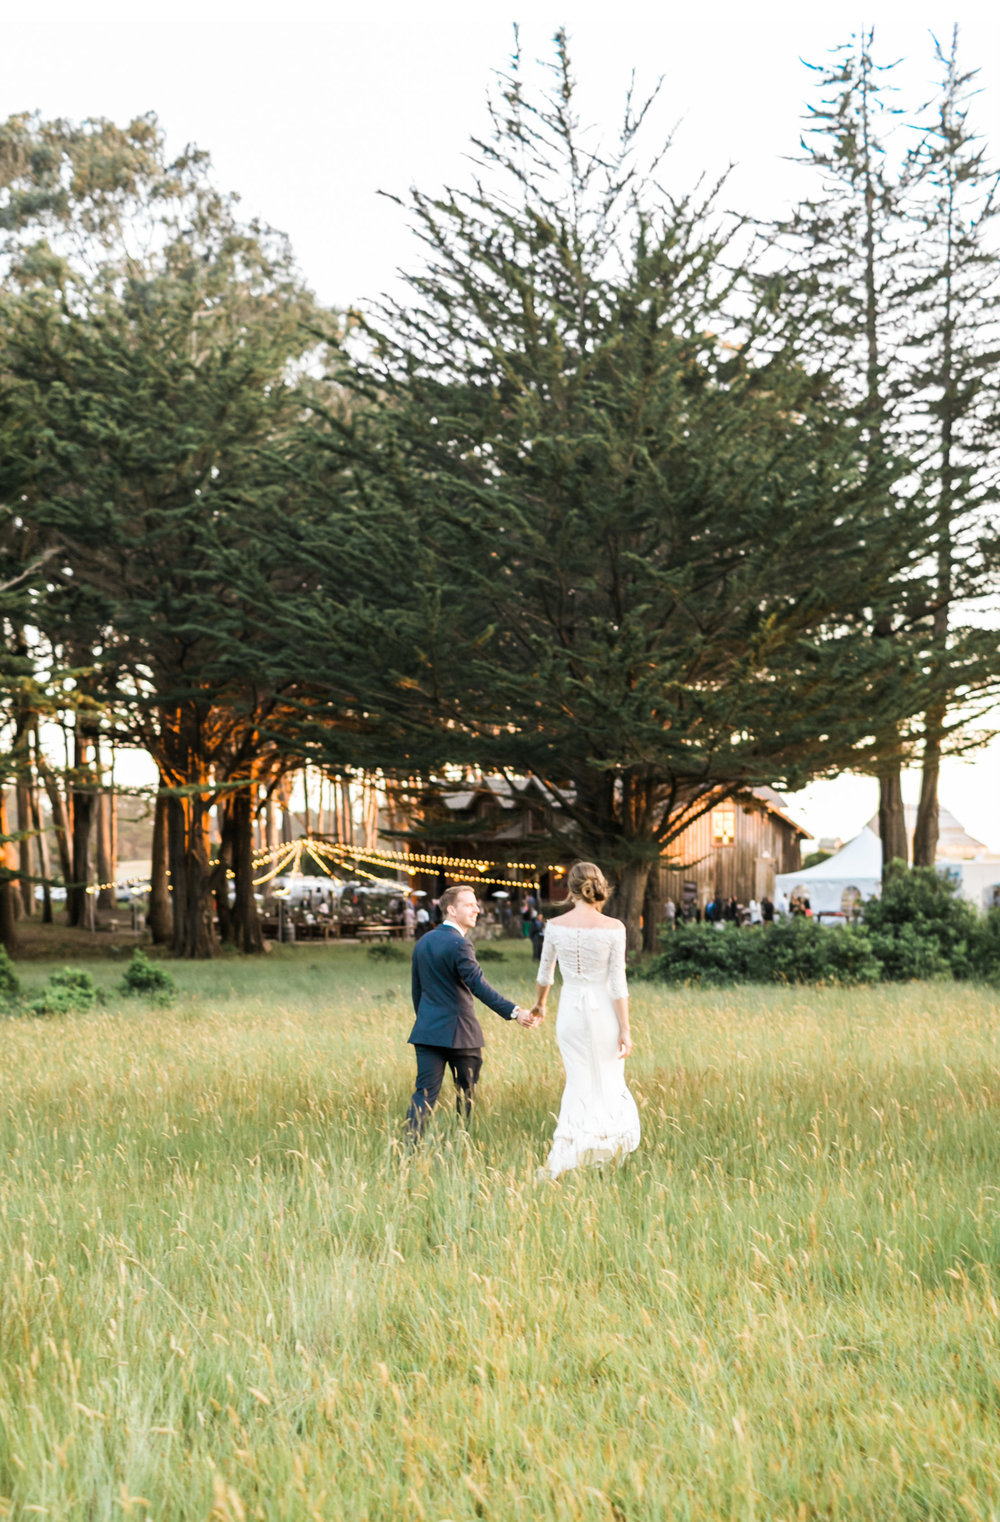 Natalie-Schutt-Photography-Adventure-Wedding-Mendocino_10.jpg